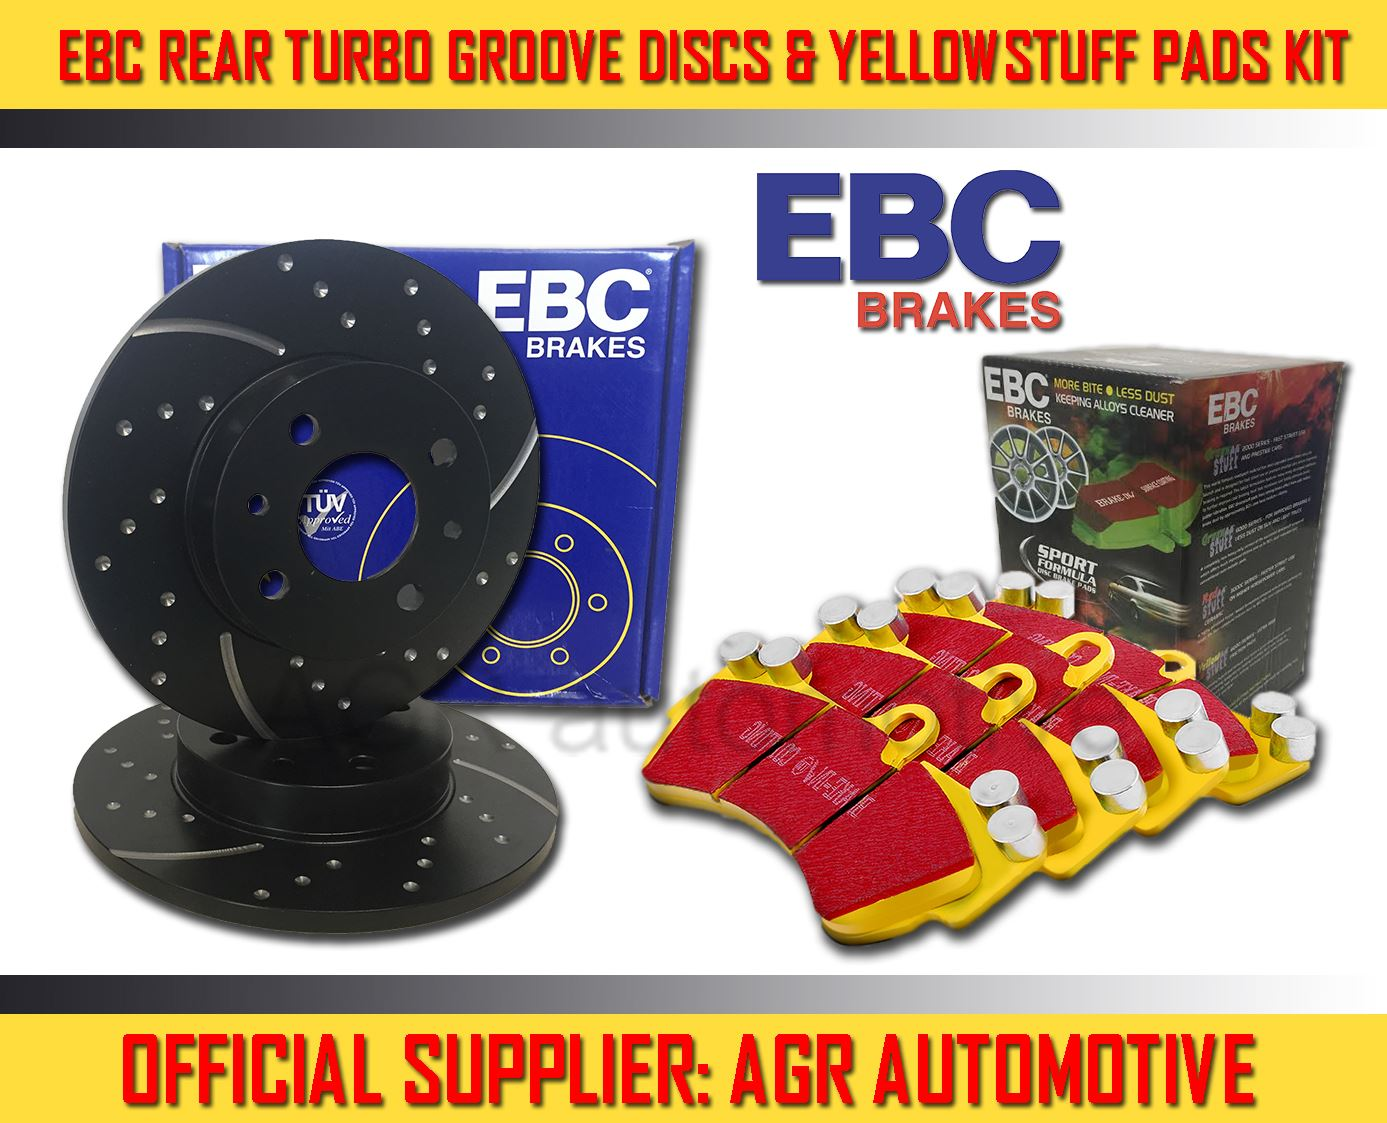 OEM SPEC FRONT AND REAR PADS FOR PEUGEOT RCZ 1.6 TURBO 156 BHP 2009